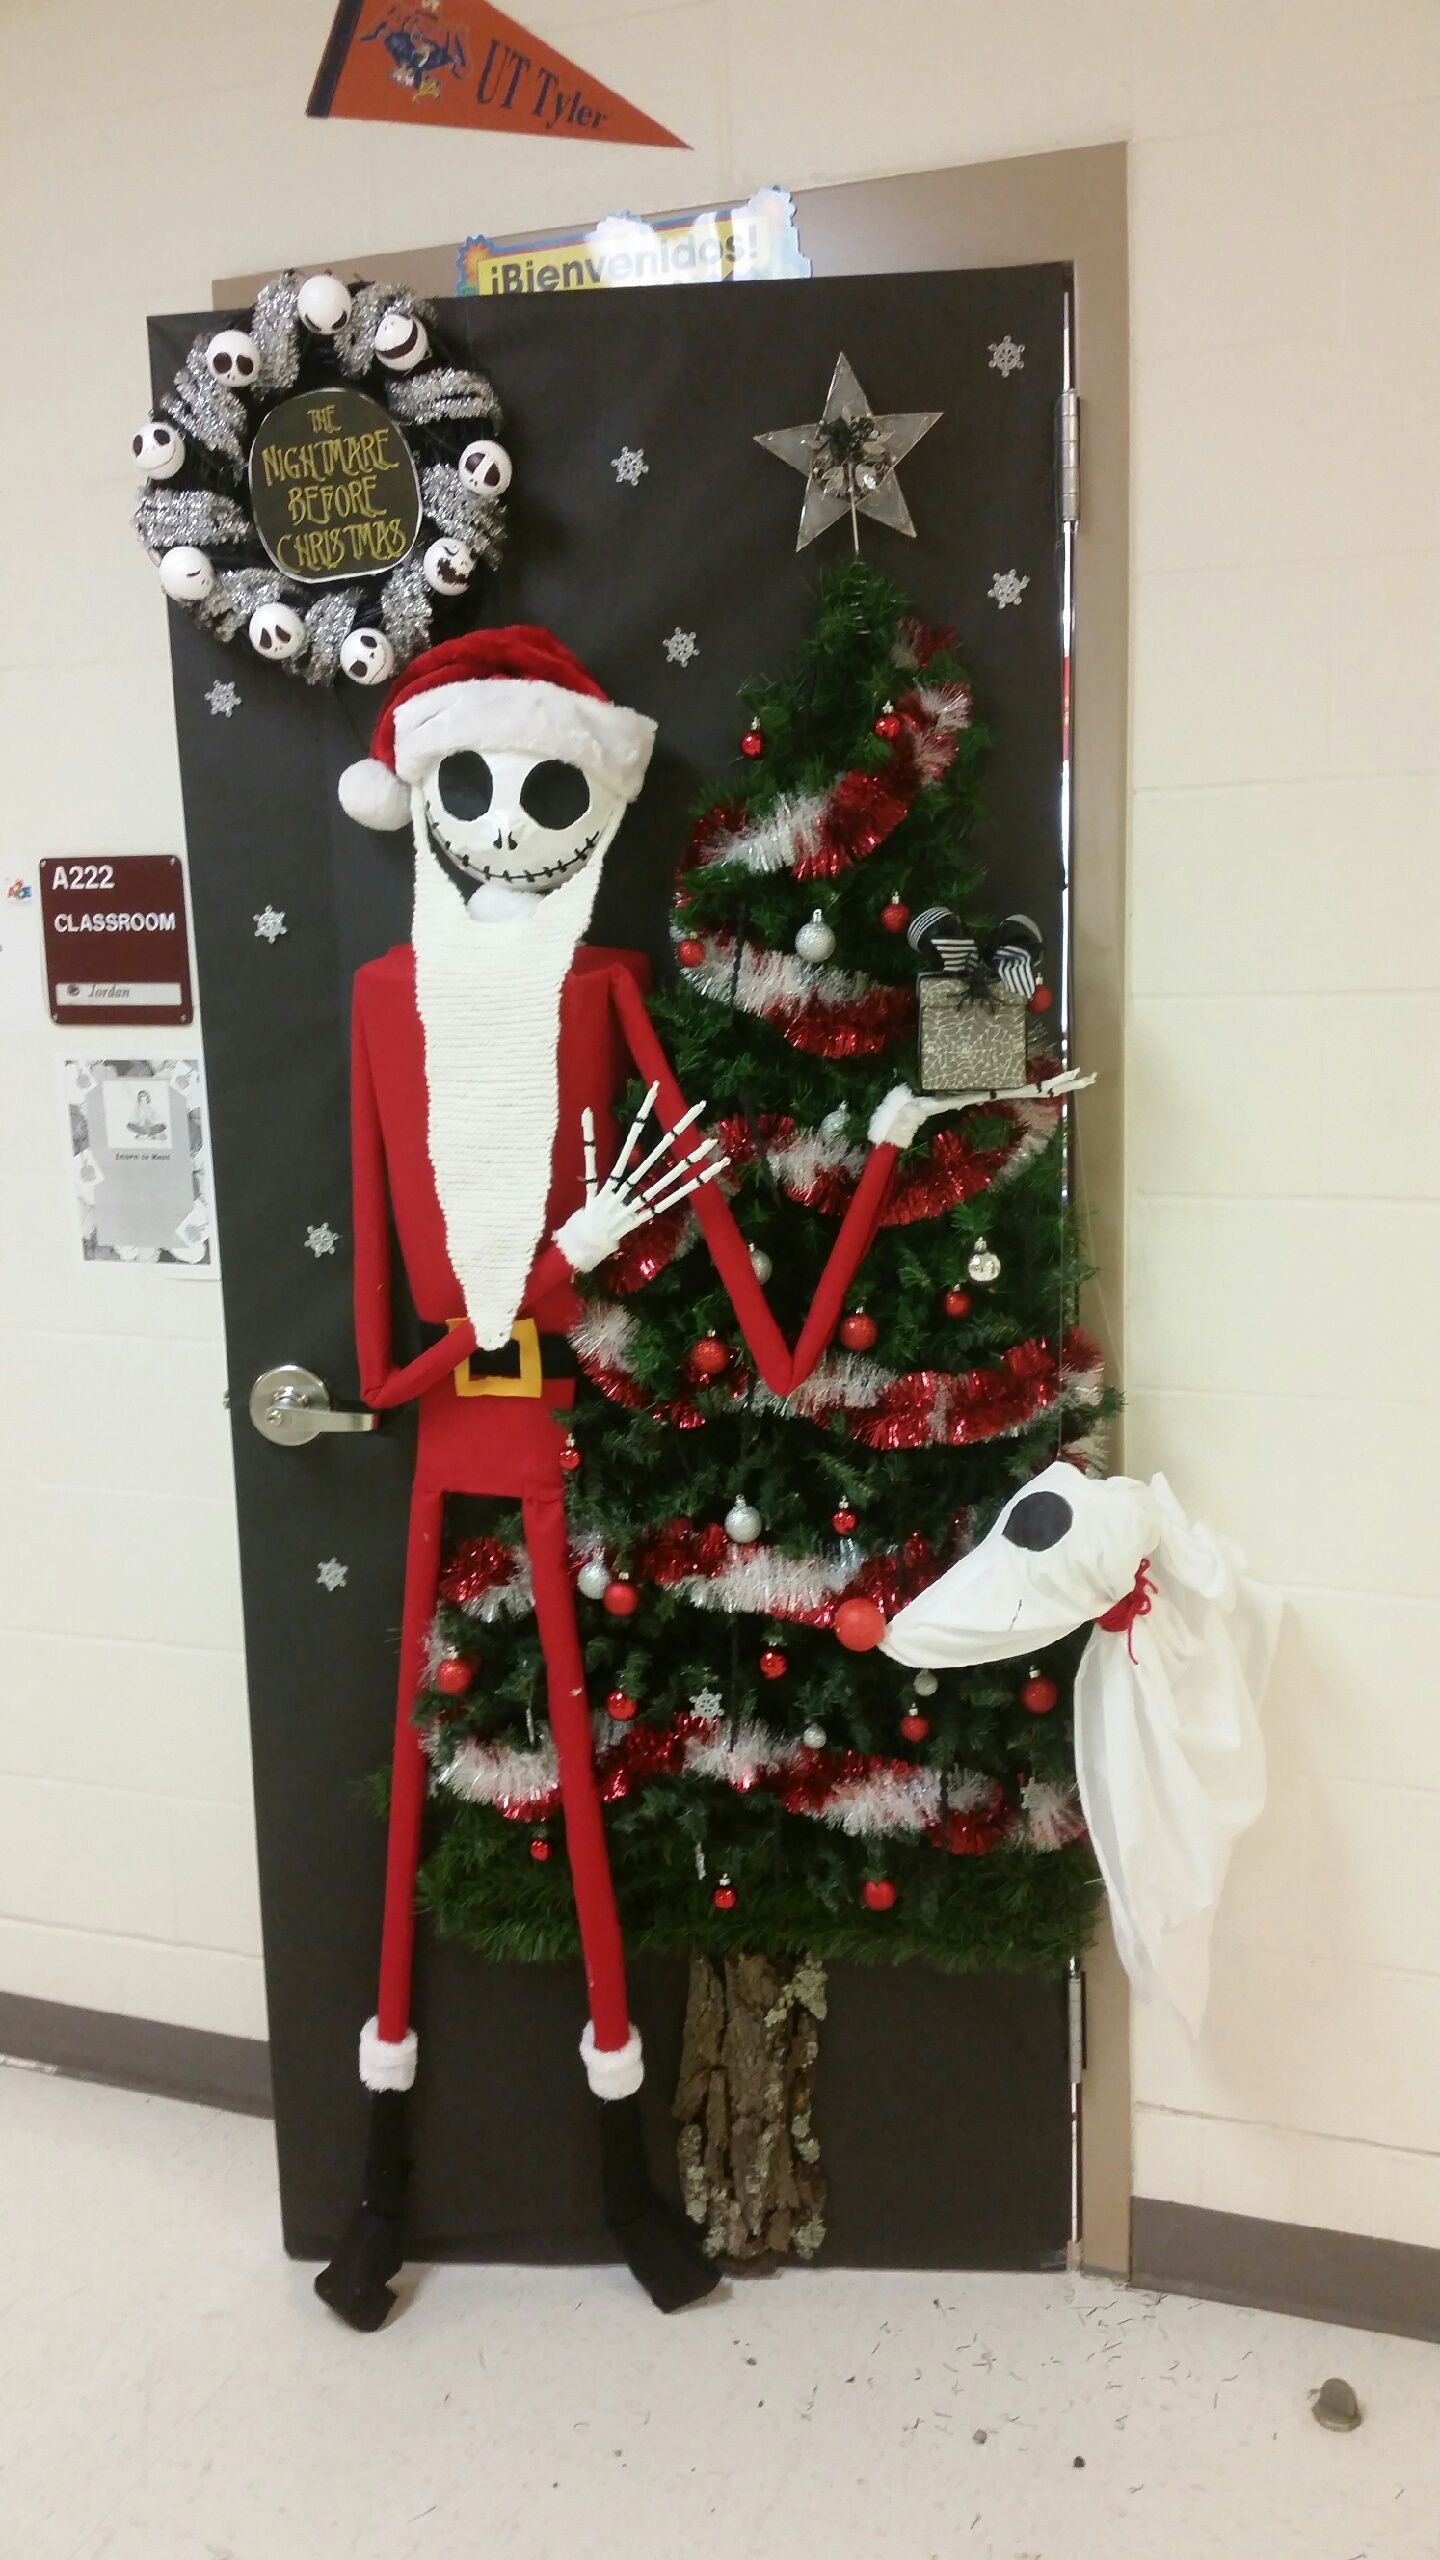 The Nightmare before Christmas door